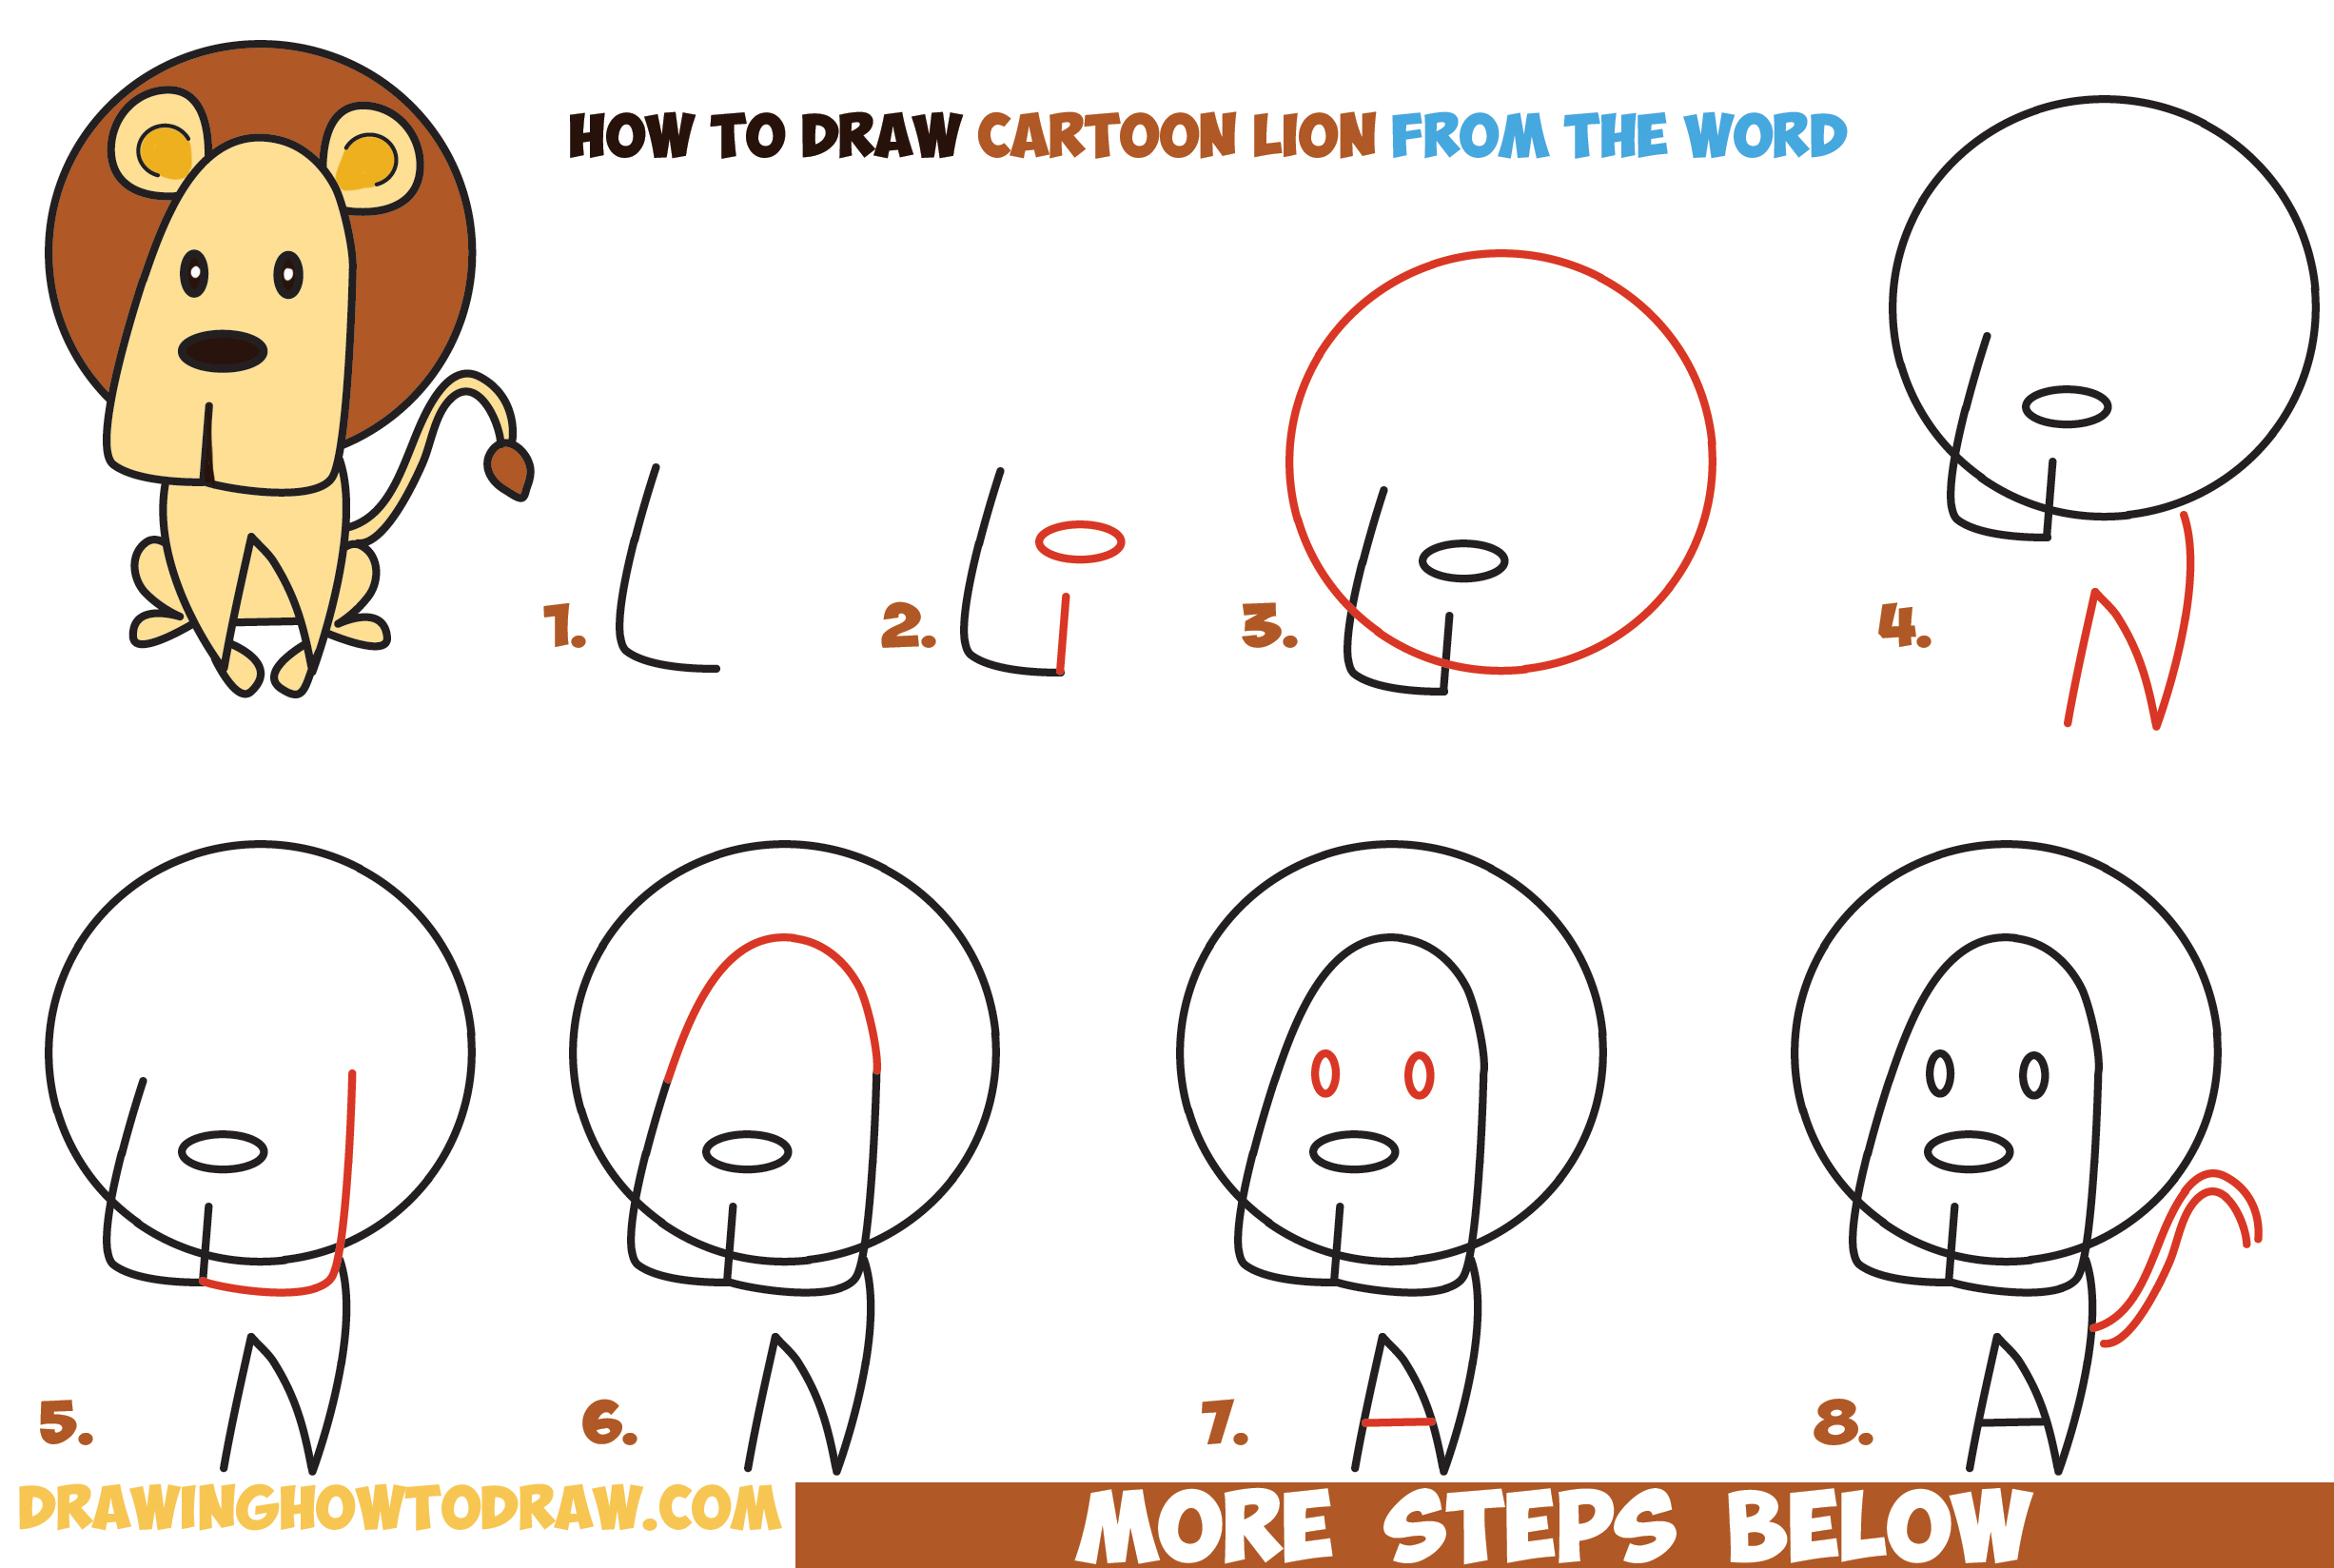 how to draw cartoon lion from the word easy step by step